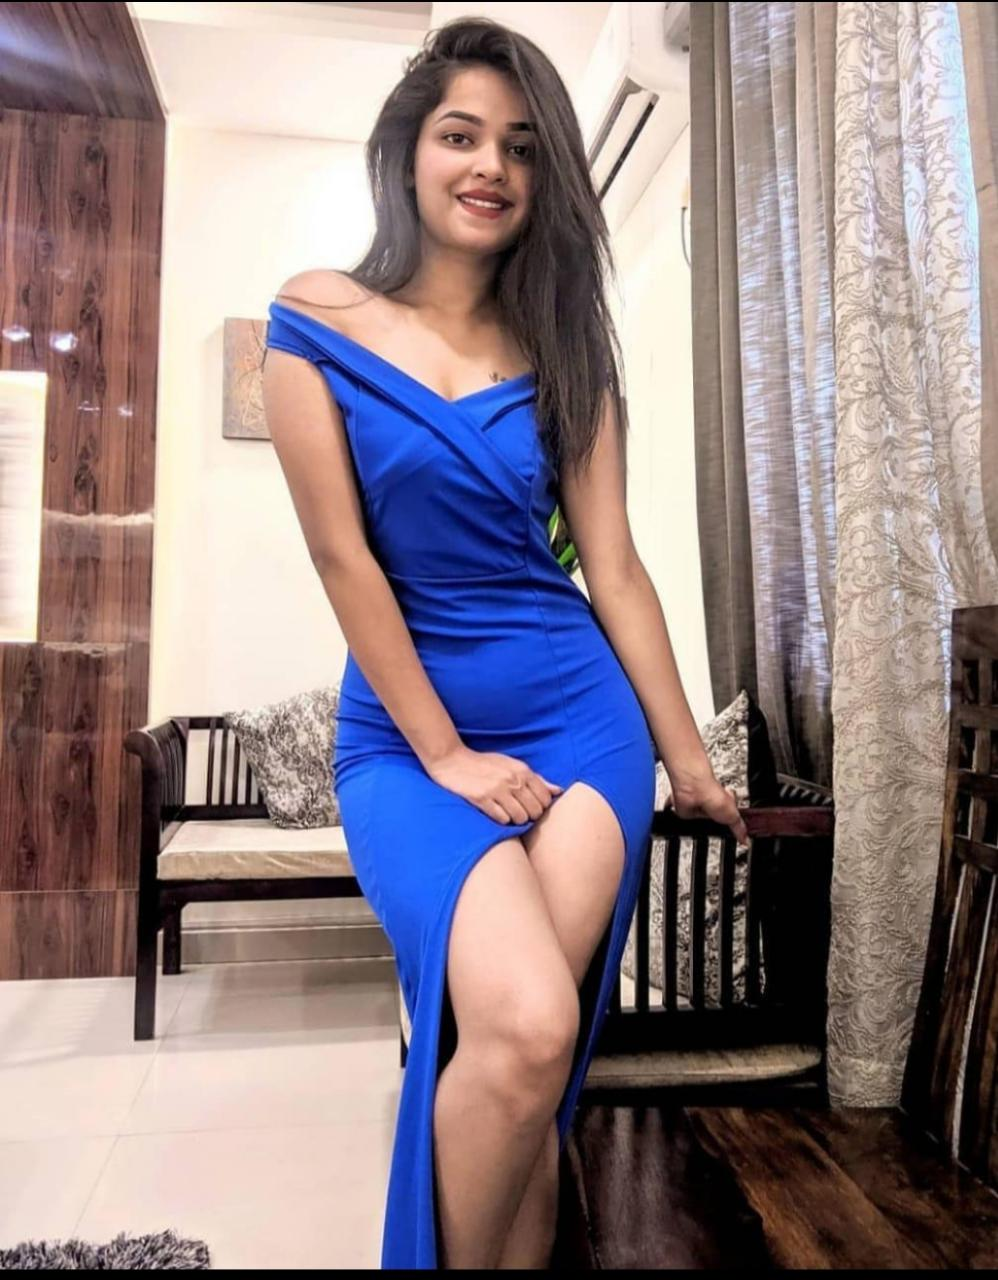 Vip Call Girls In Noida Sec-38/ 98218 11363 Escorts ServiCe In Delhi Ncr